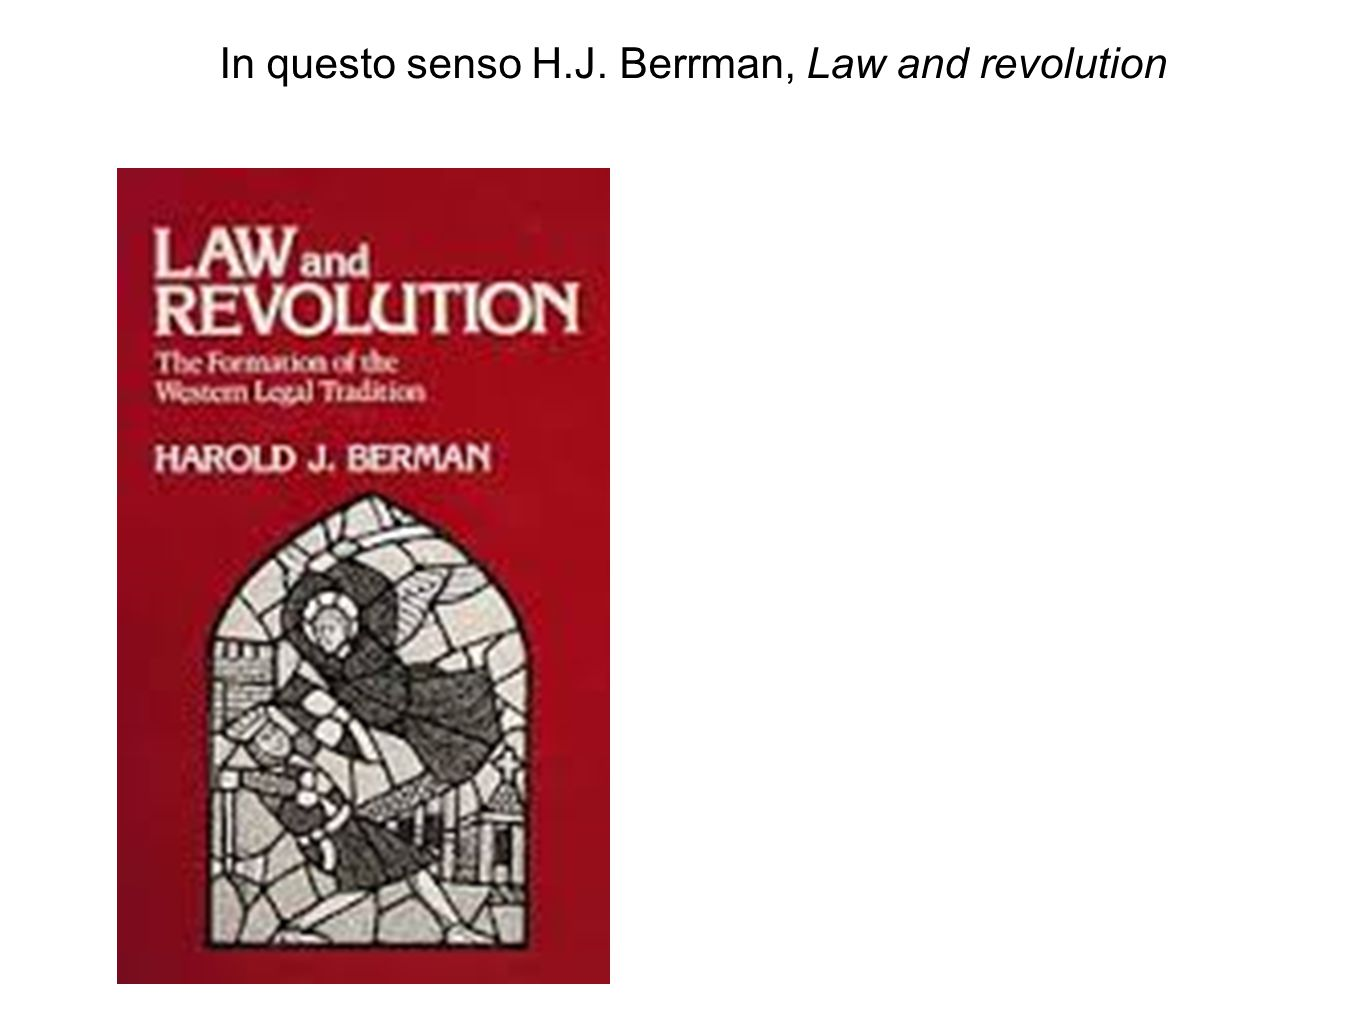 In questo senso H.J. Berrman, Law and revolution